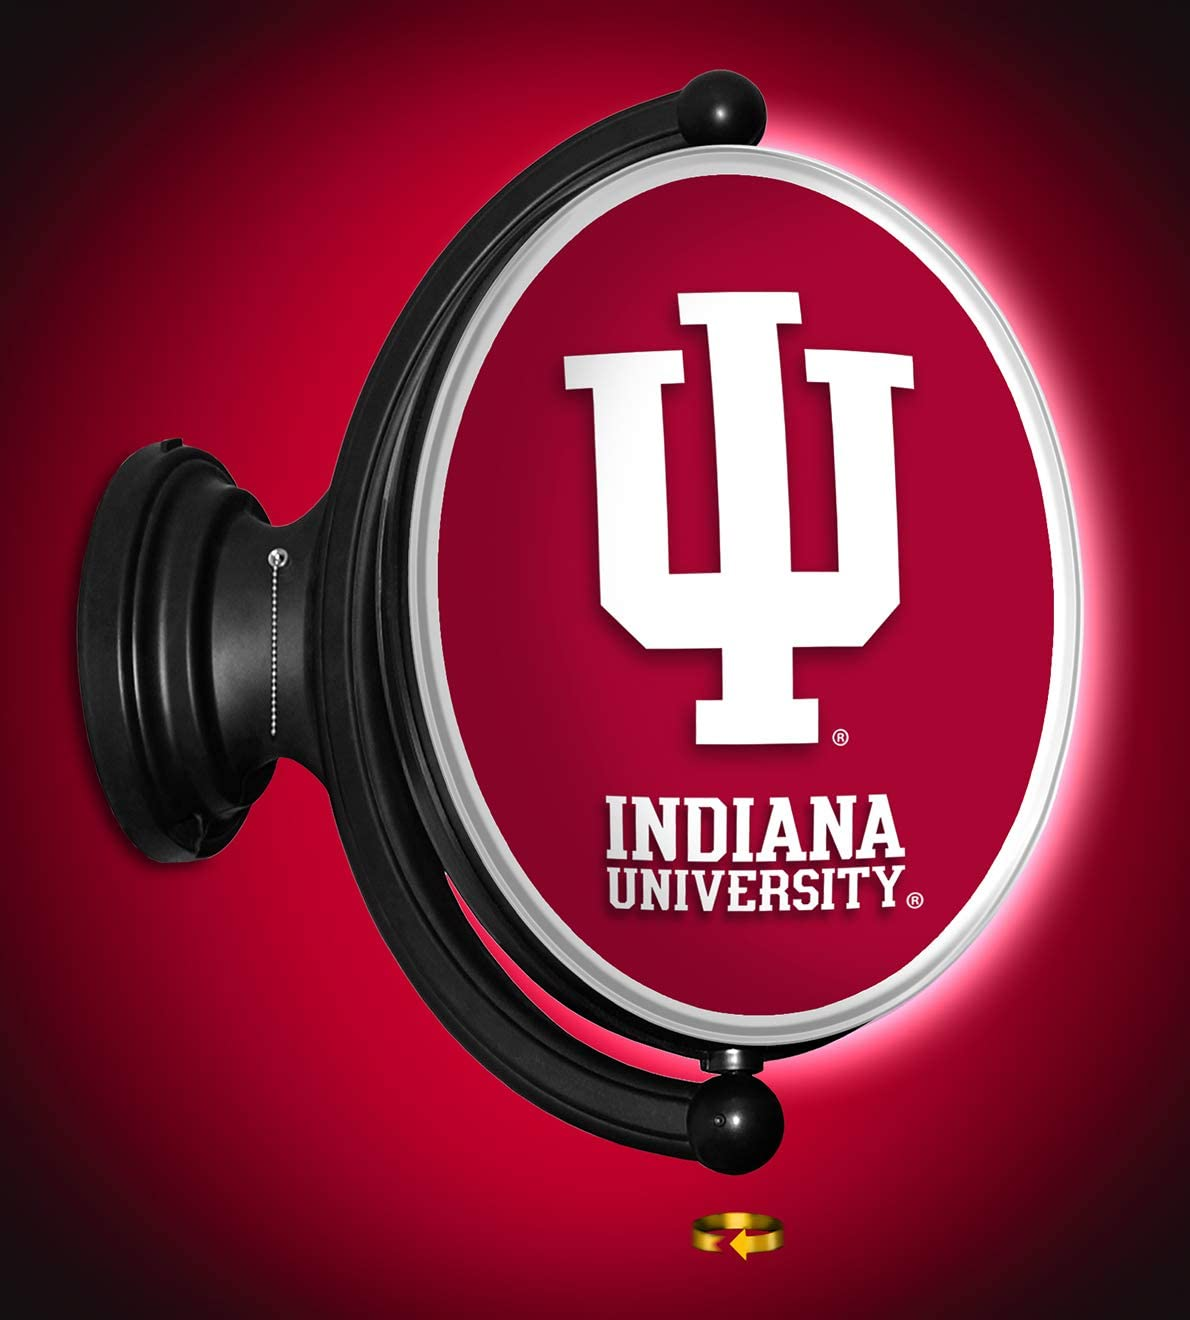 Shop Sales Grimm IU Indiana University Sign Rotating Some reservation LED Wall Featurin